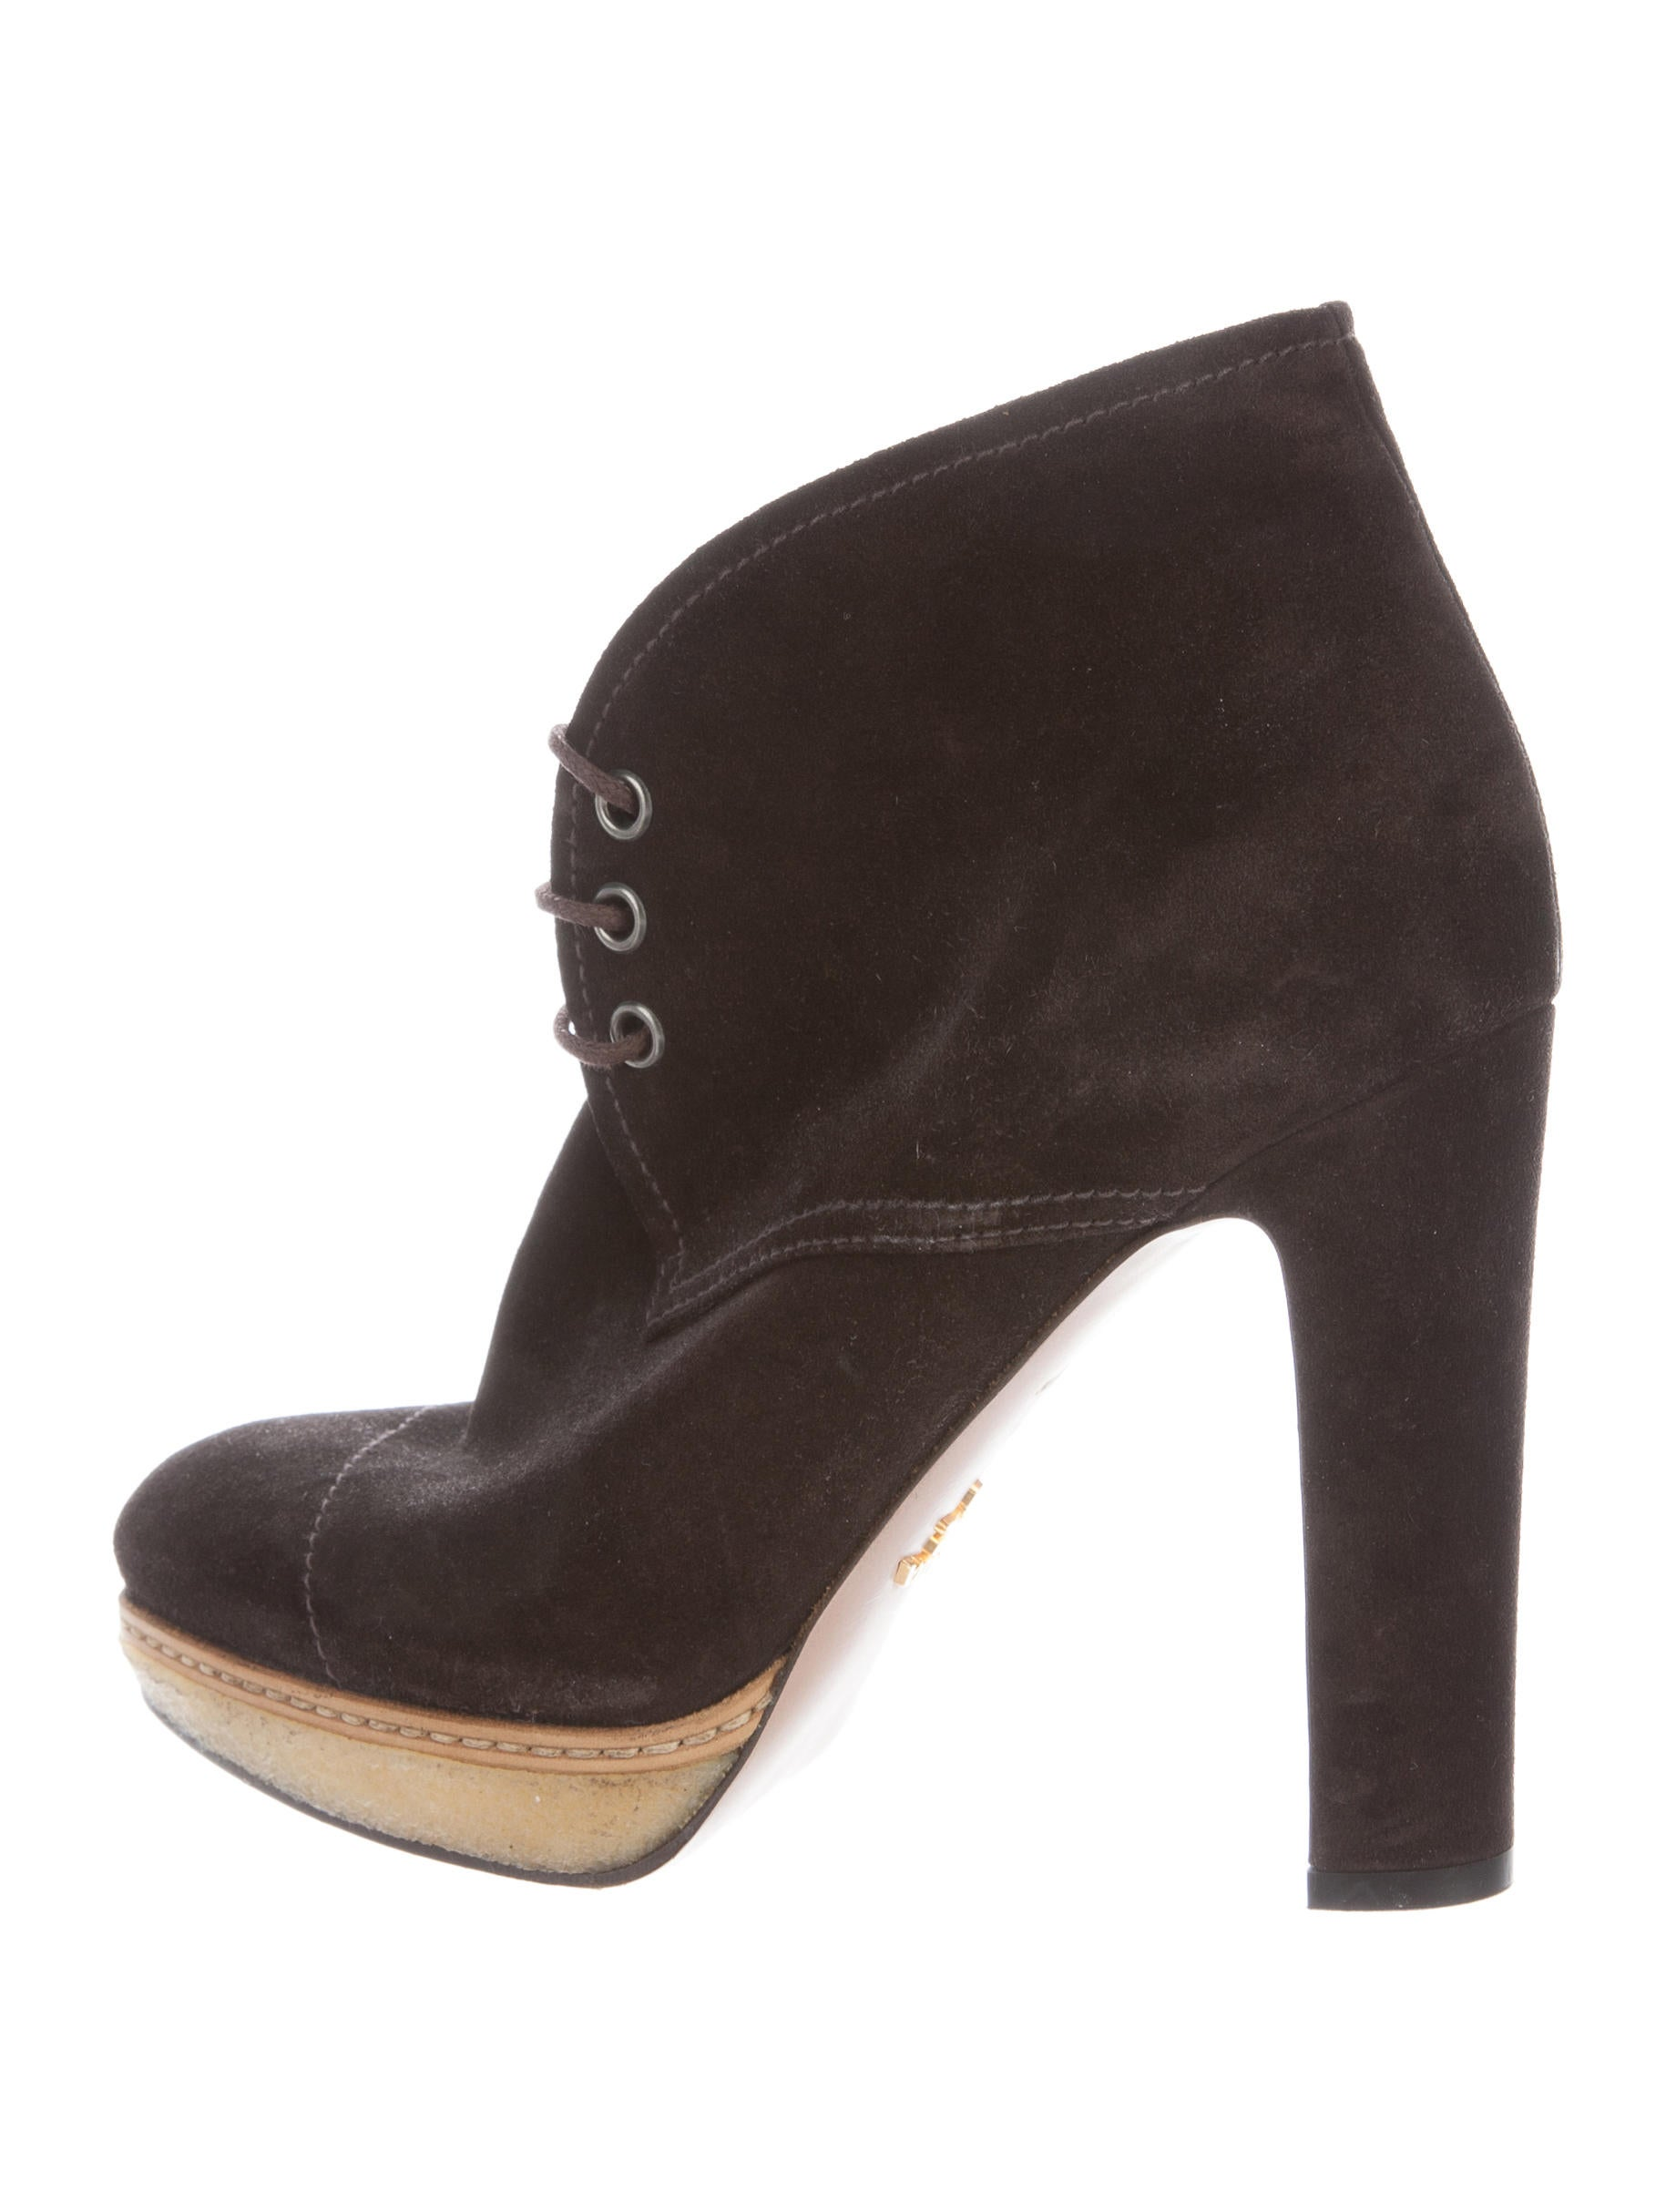 prada suede pointed toe ankle boots shoes pra158375